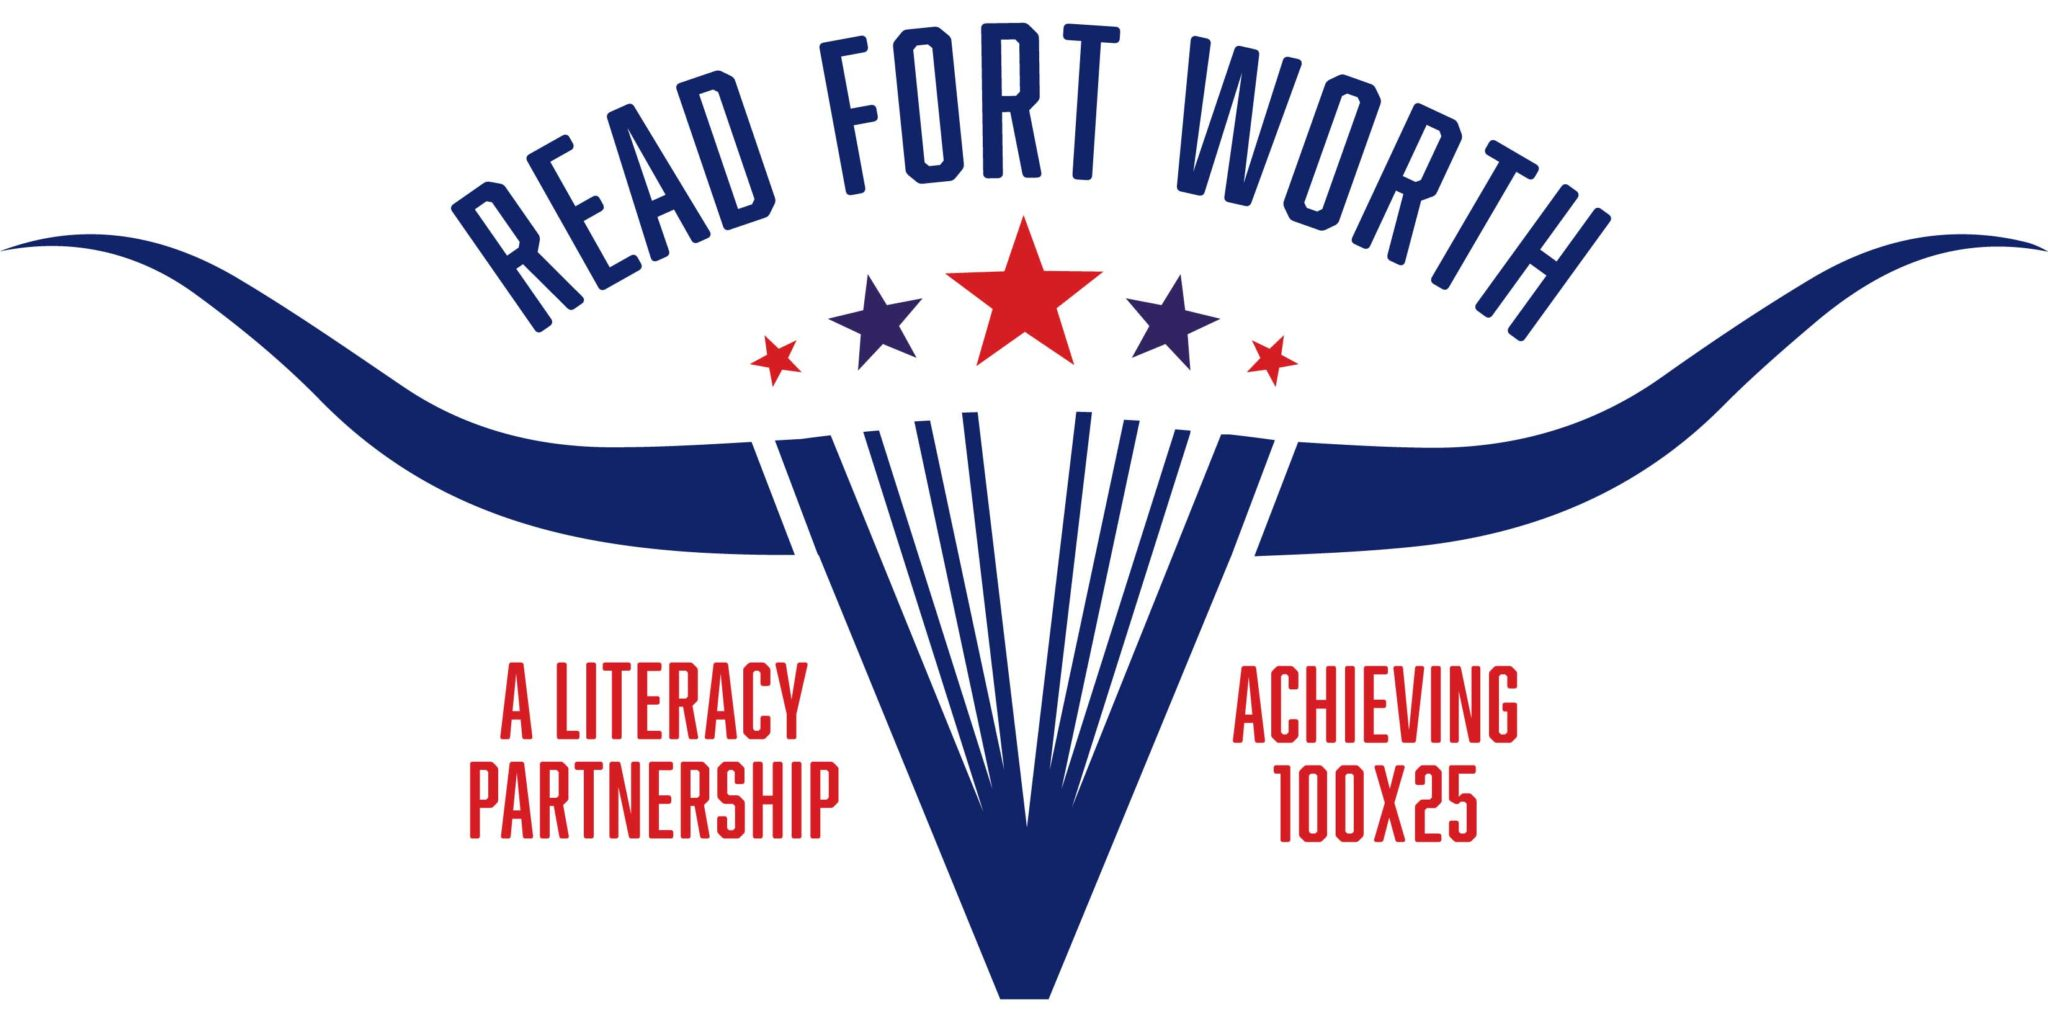 Brand Identity Guidelines for use of the Read Fort Worth LogoRead ... 80267928c83